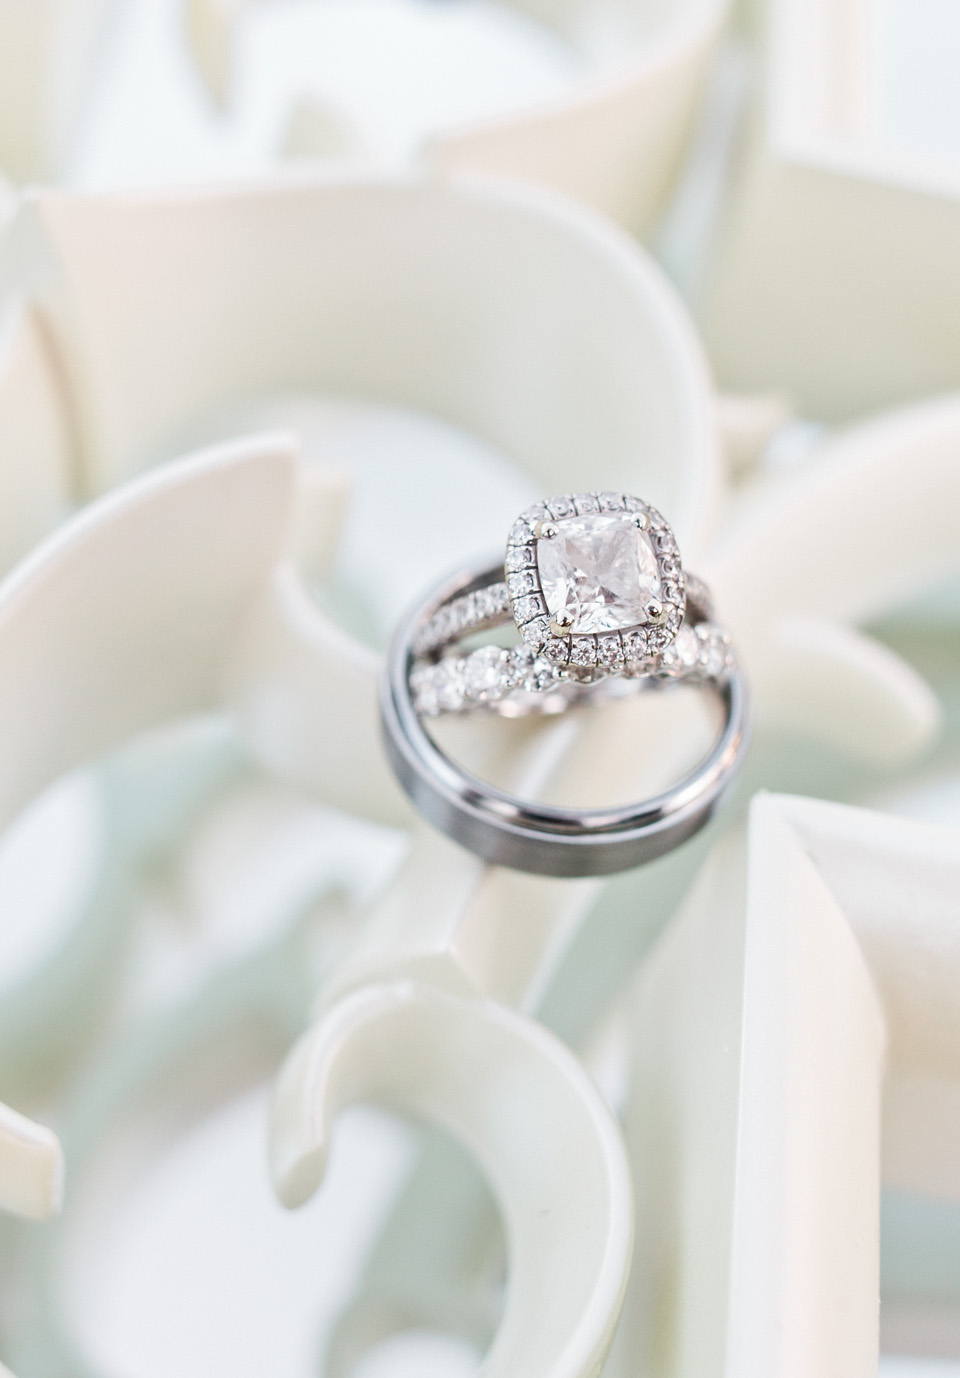 Image of wedding rings on a wedding day at TPC Sawgrass in Ponte Vedra, Florida